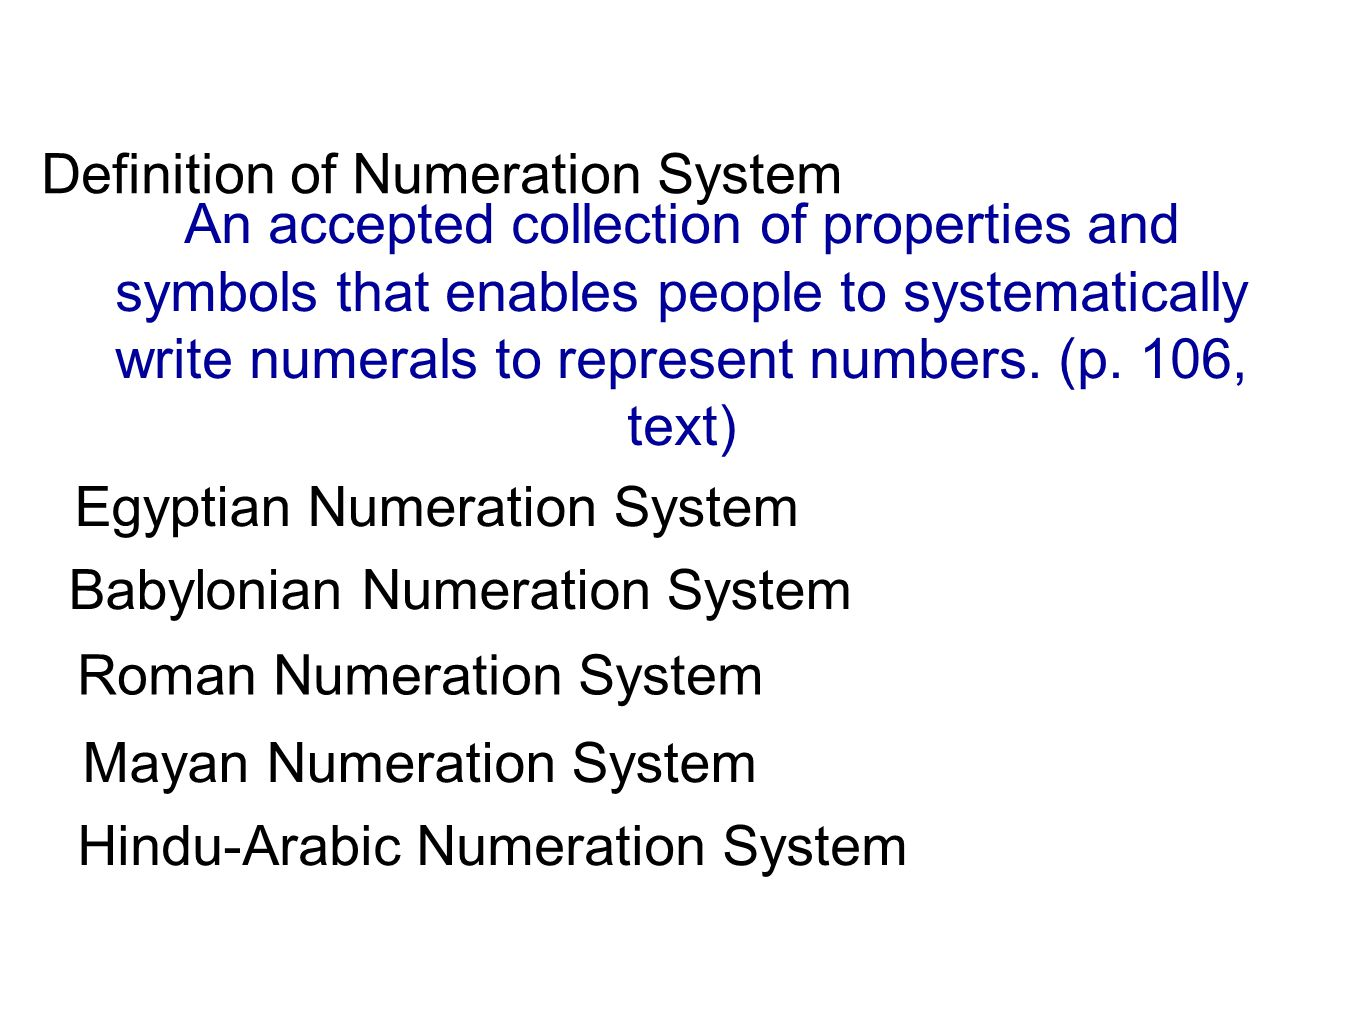 Hindu-Arabic Numeration System Developed by Indian and Arabic cultures It is our most familiar example of a numeration system Group by tens: base ten system 10 symbols: 0, 1, 2, 3, 4, 5, 6, 7, 8, 9 Place value - Yes.